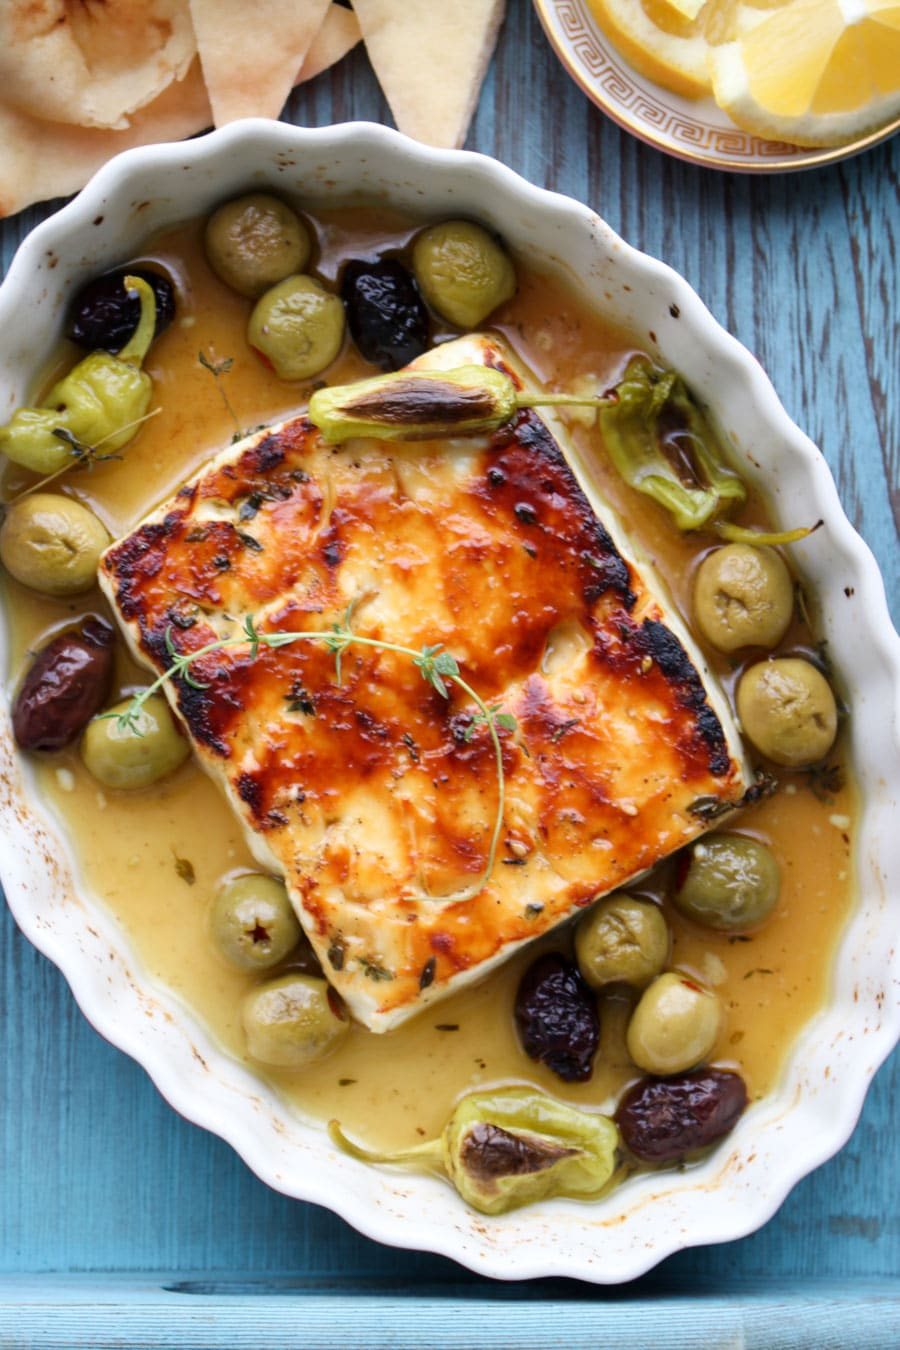 Baked feta in baking dish with olive and olive oil